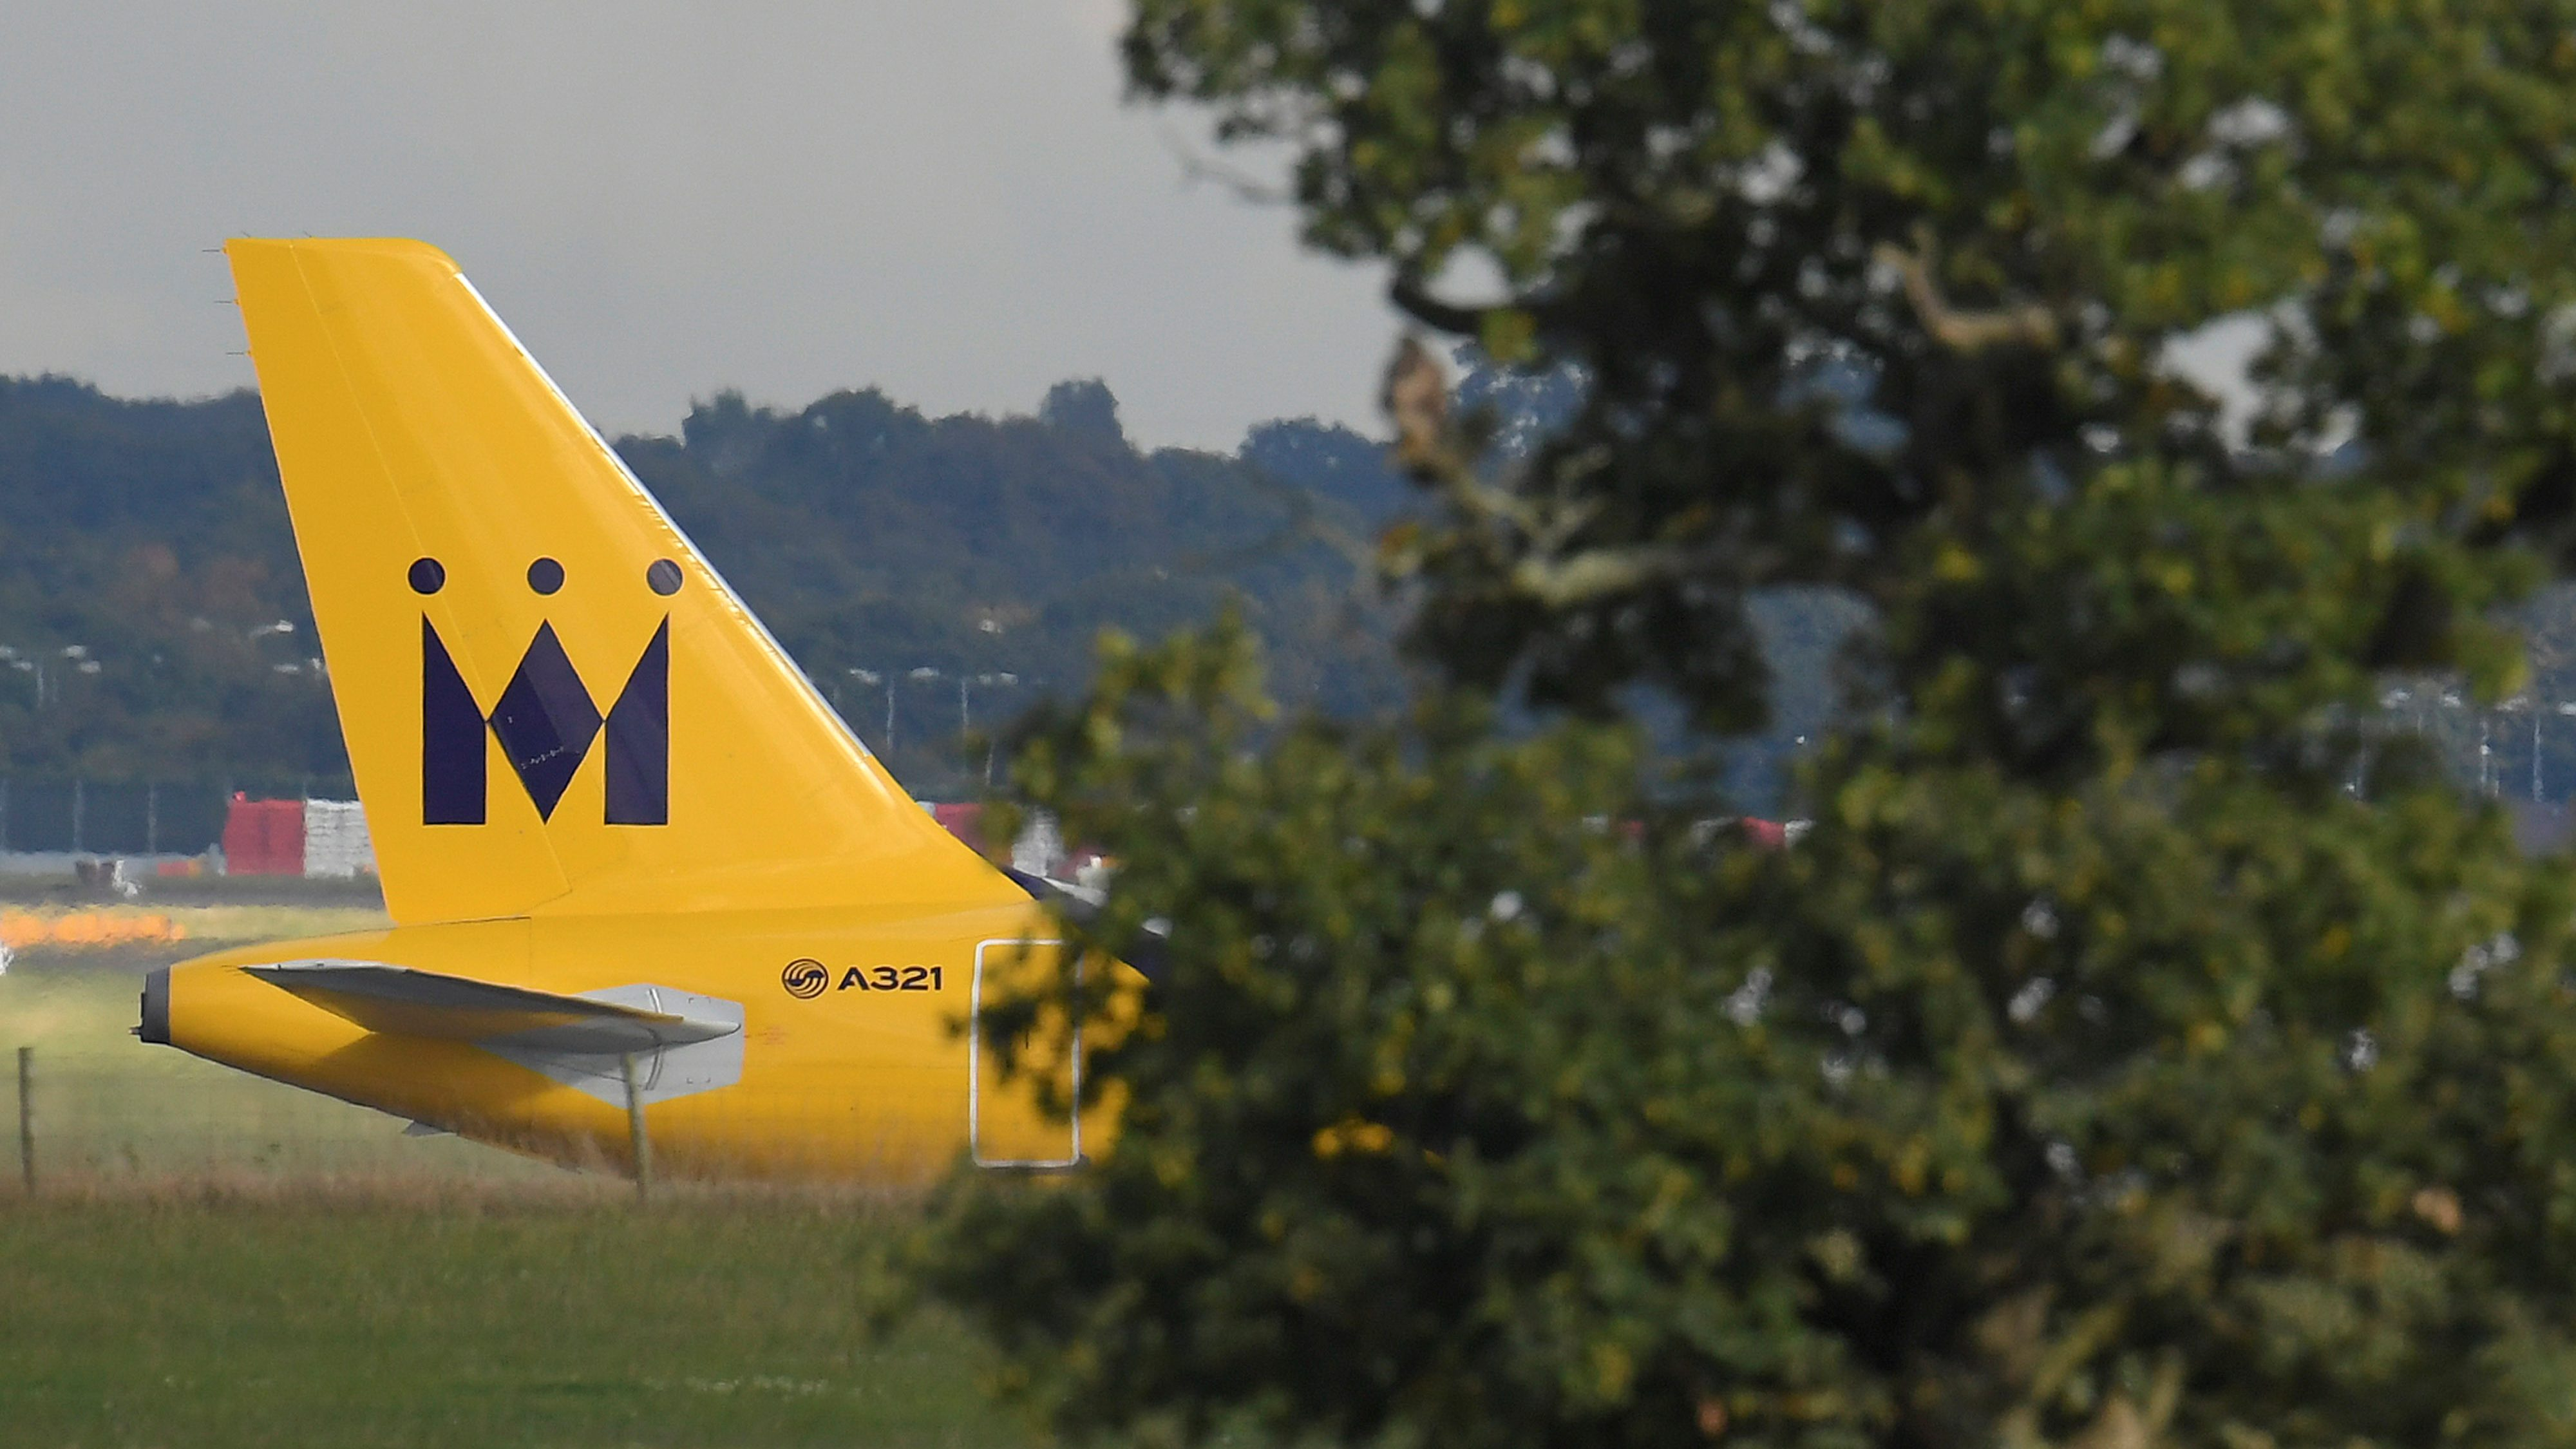 A Monarch Airlines passenger aircraft prepares for take off from Gatwick Airport in southern England, Britain, October 9, 2016.